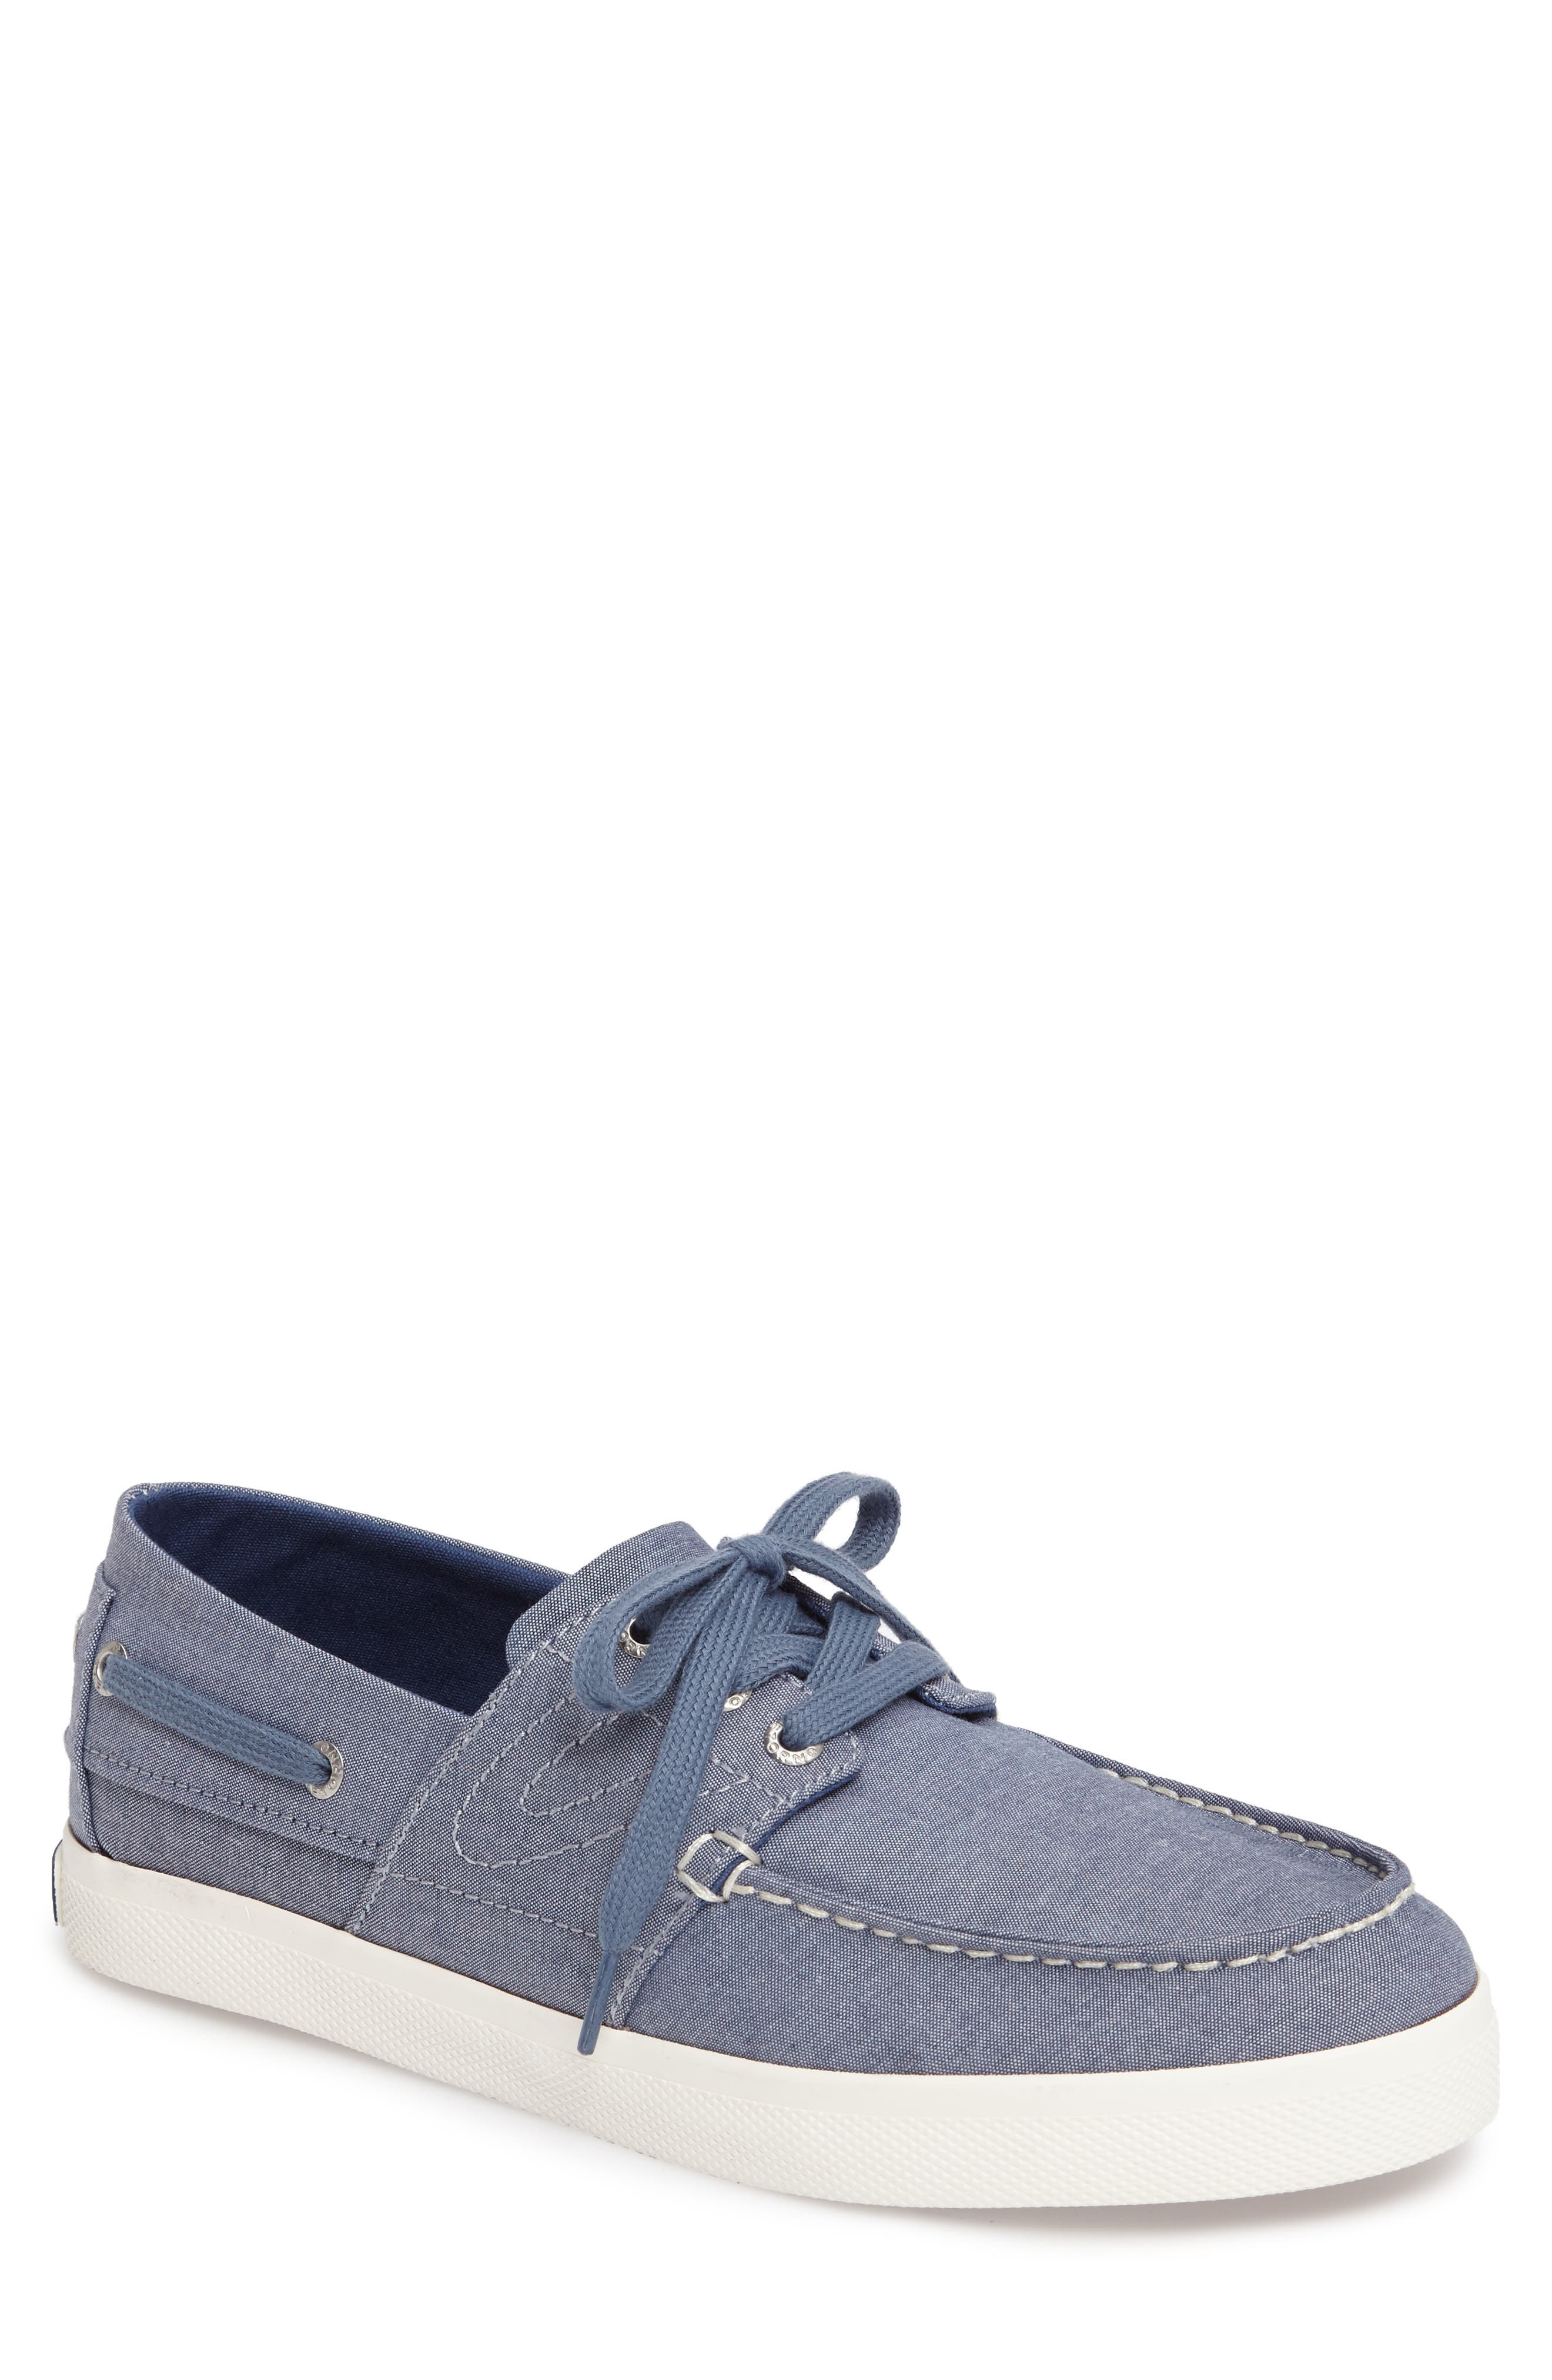 Tretorn Motto Boat Shoe (Men)